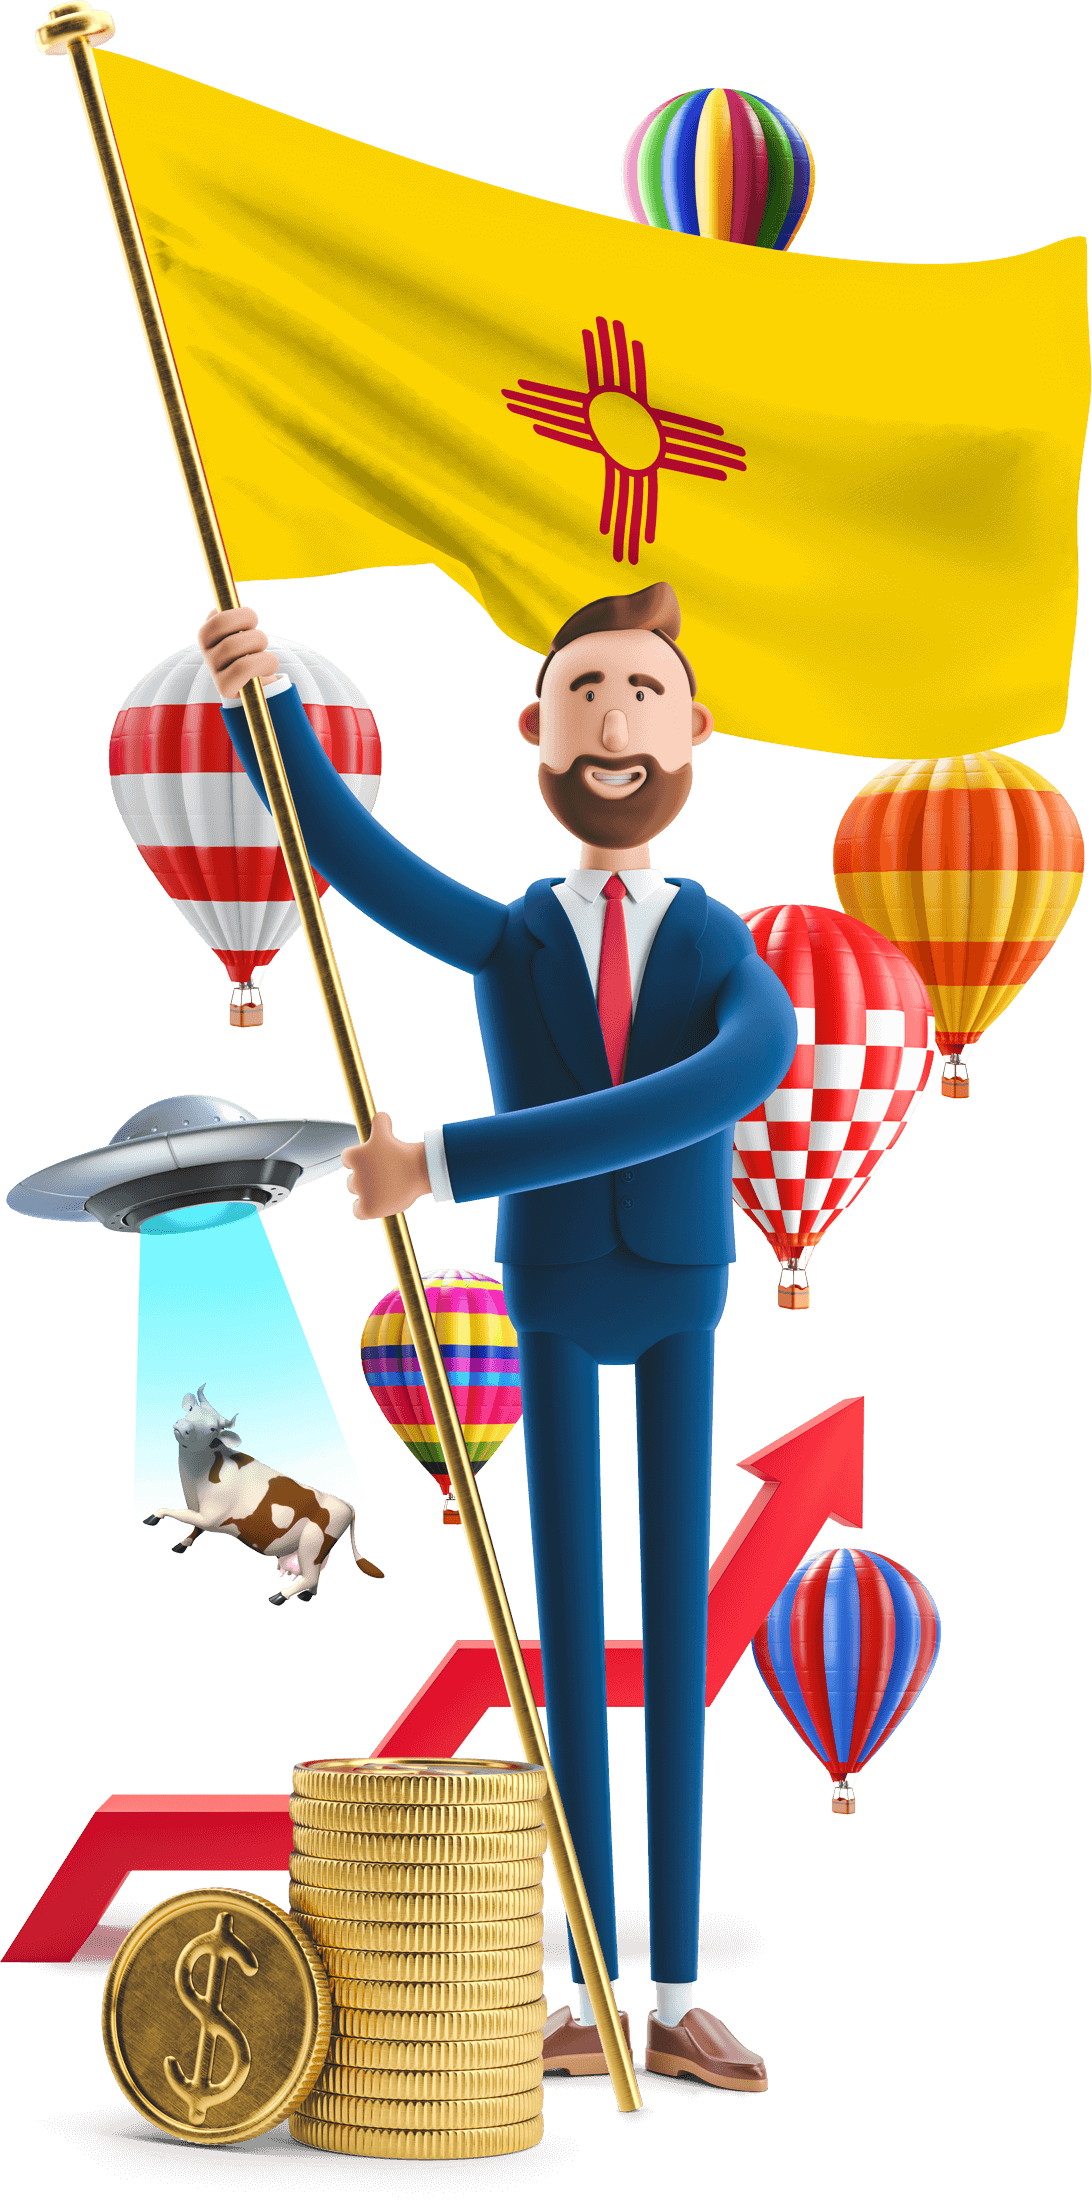 New Mexico flag held by MetCredit USA businessman who's standing in front of hot air balloons and a UFO that's beaming up a cow